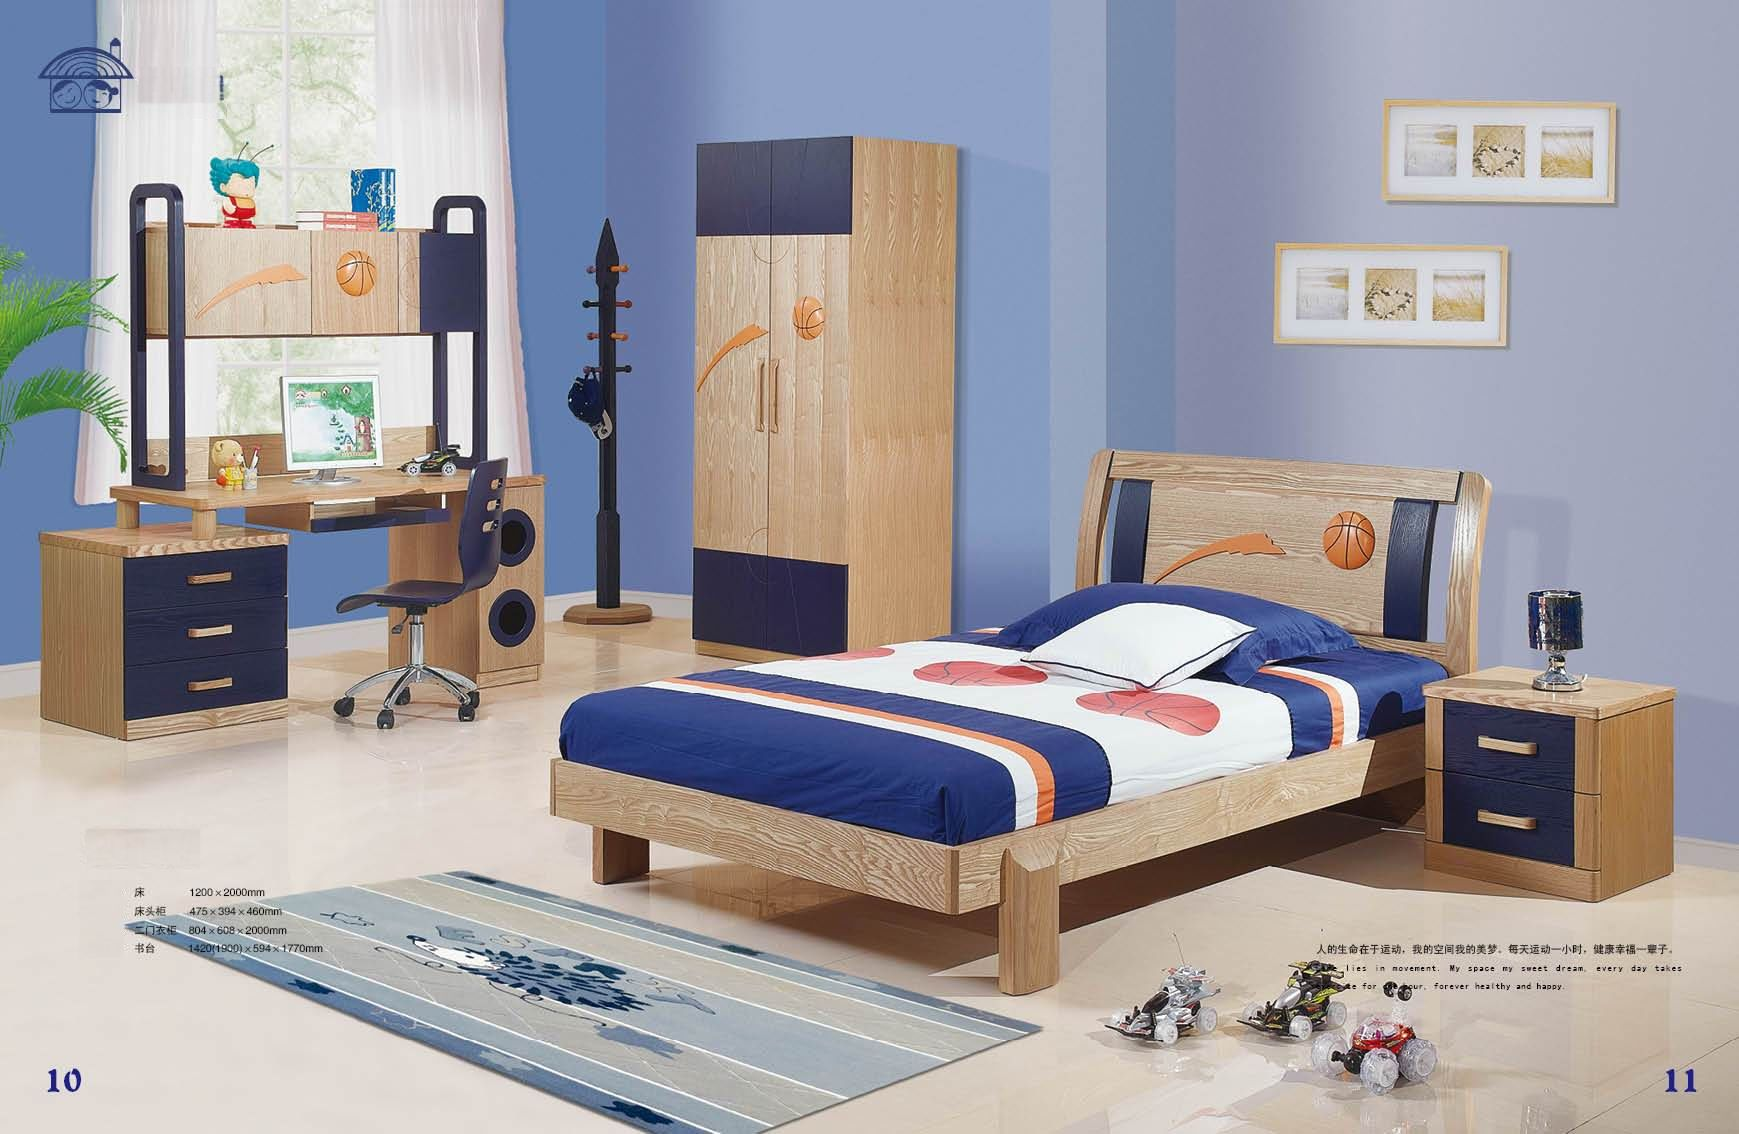 Youth Bedroom Furniture   Kids Bedroom Set  JKD 20120     China Kids. Youth Bedroom Furniture   Kids Bedroom Set  JKD 20120     China